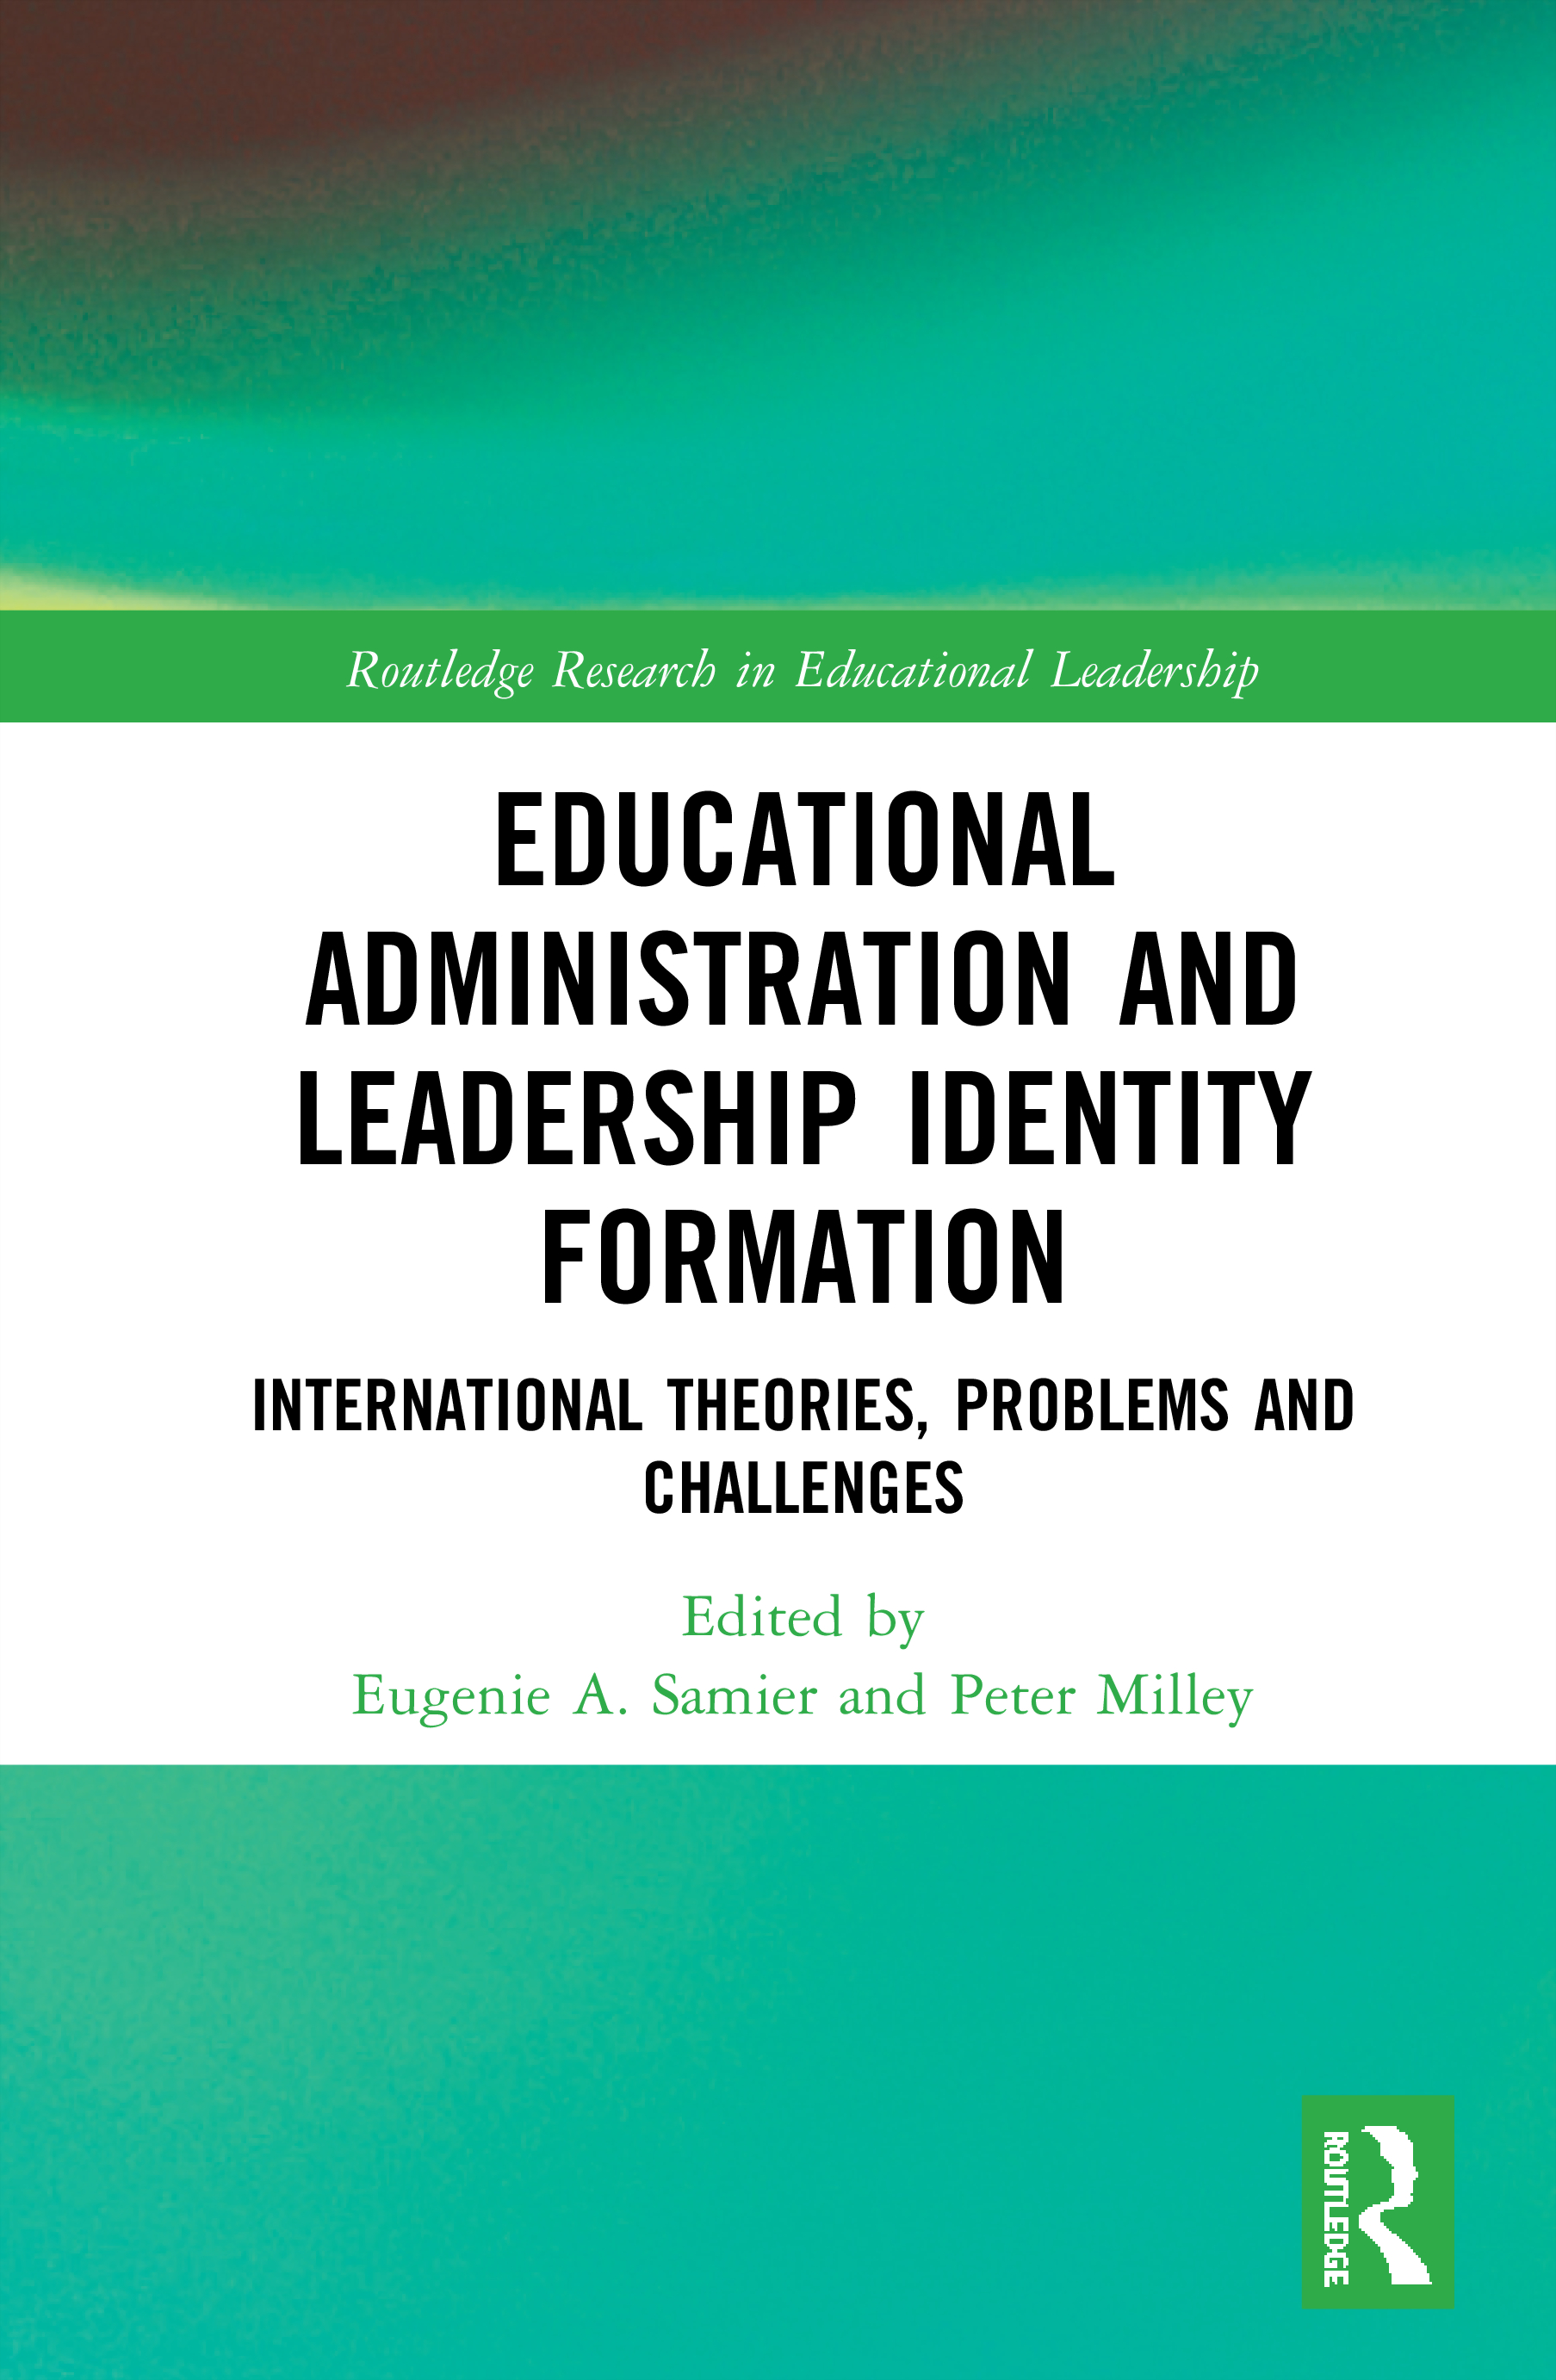 Educational Administration and Leadership Identity Formation: International Theories, Problems and Challenges book cover